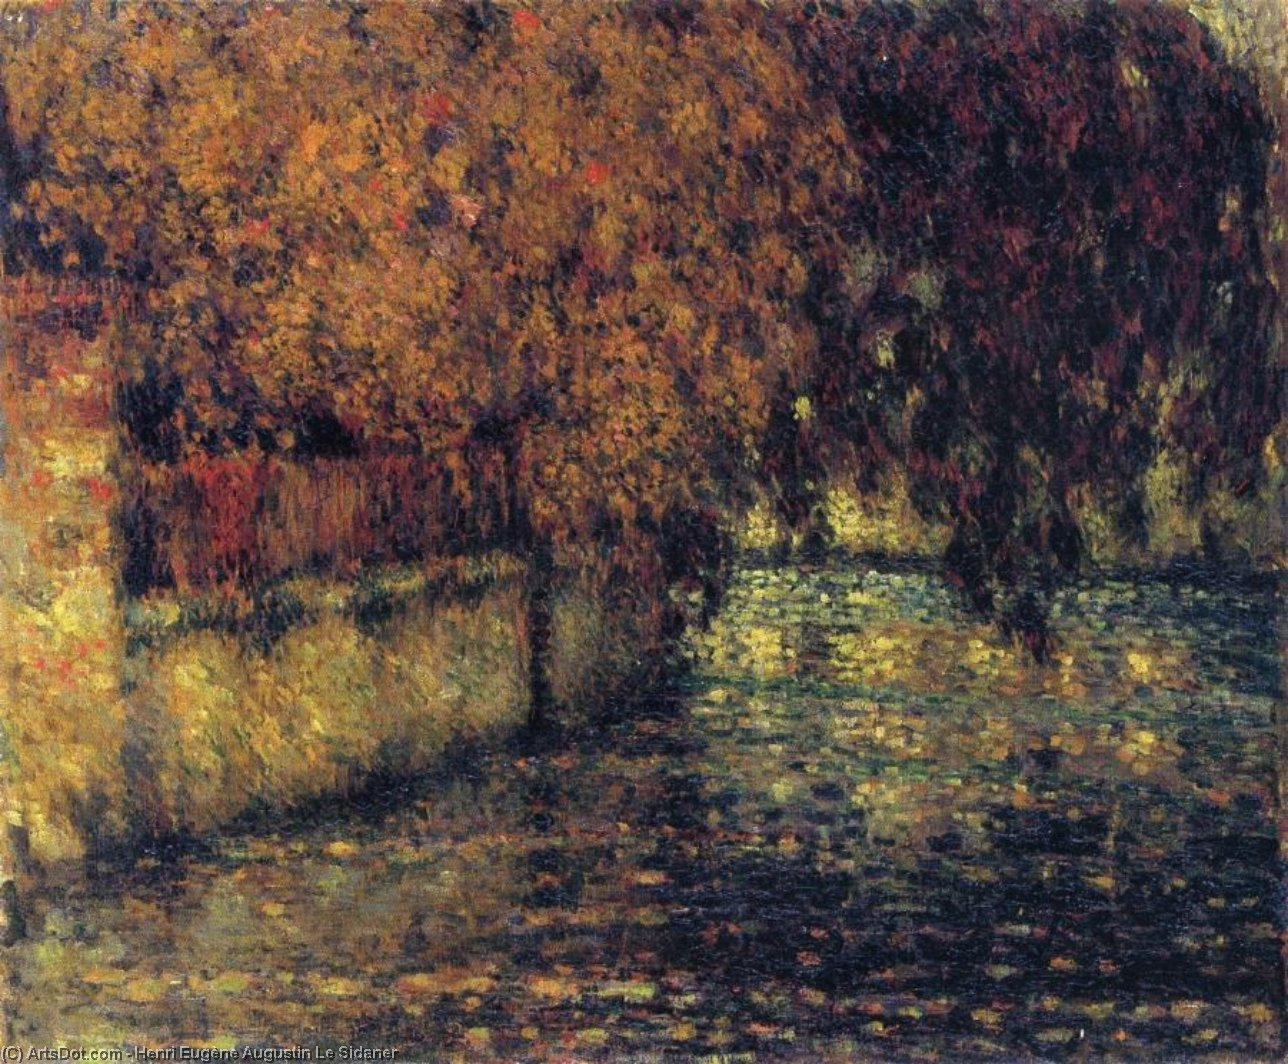 The Wall, Autumn, Oil On Canvas by Henri Eugène Augustin Le Sidaner (1862-1939, Mauritius)